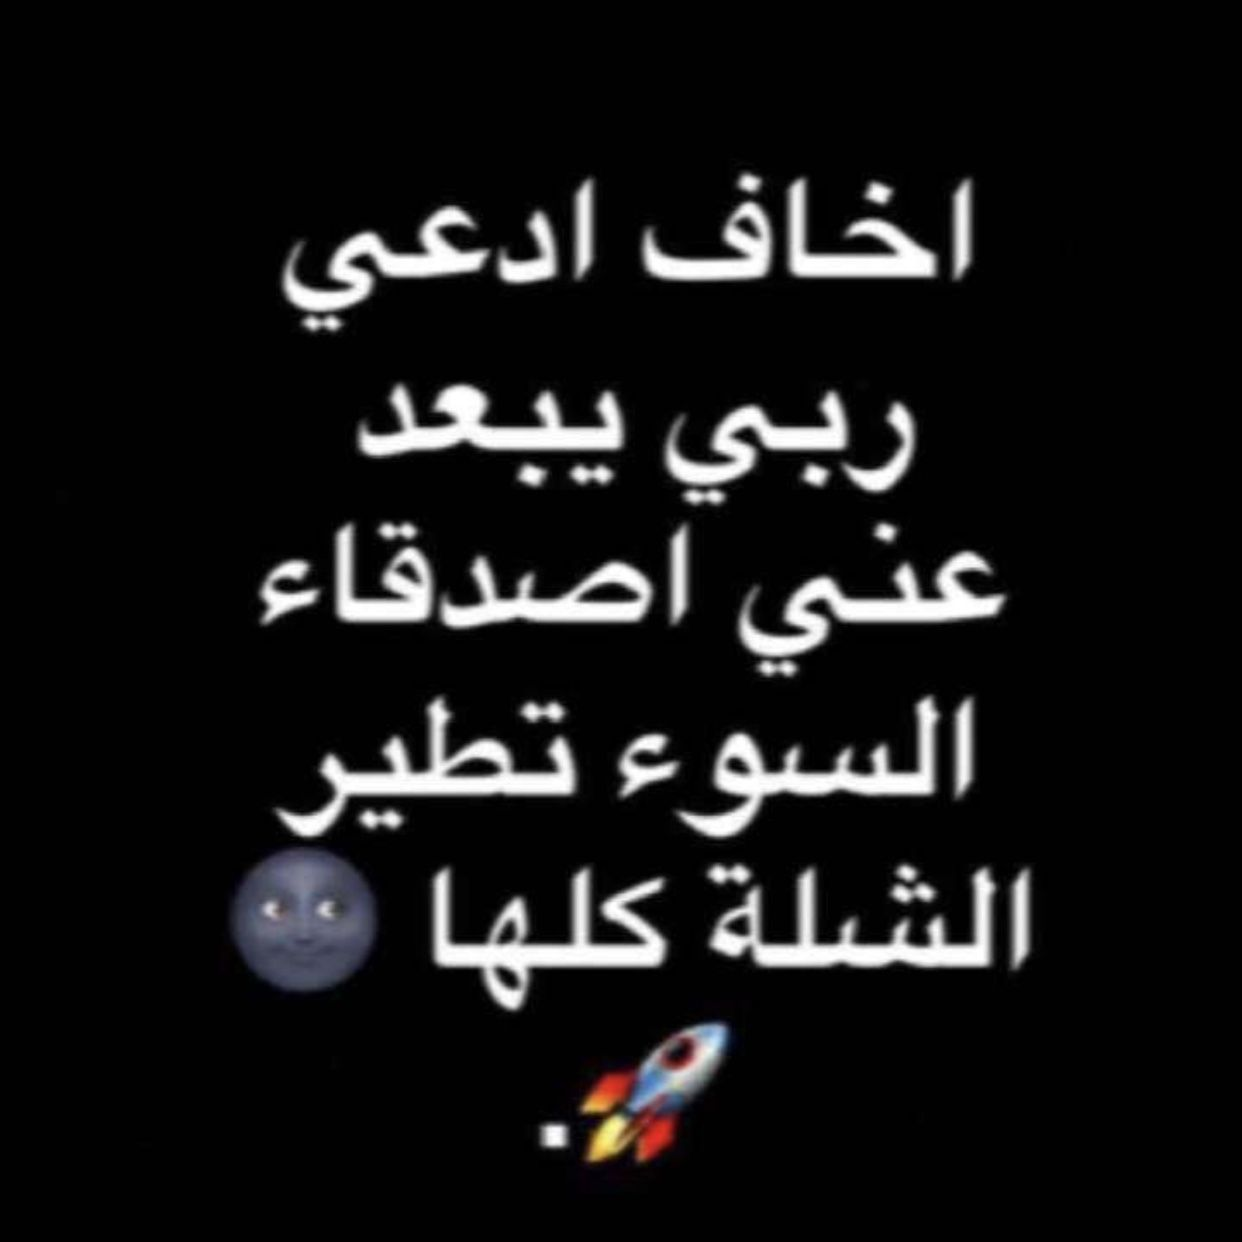 Pin By Hanan On بمووت Jokes Quotes Funny Words Wisdom Quotes Life